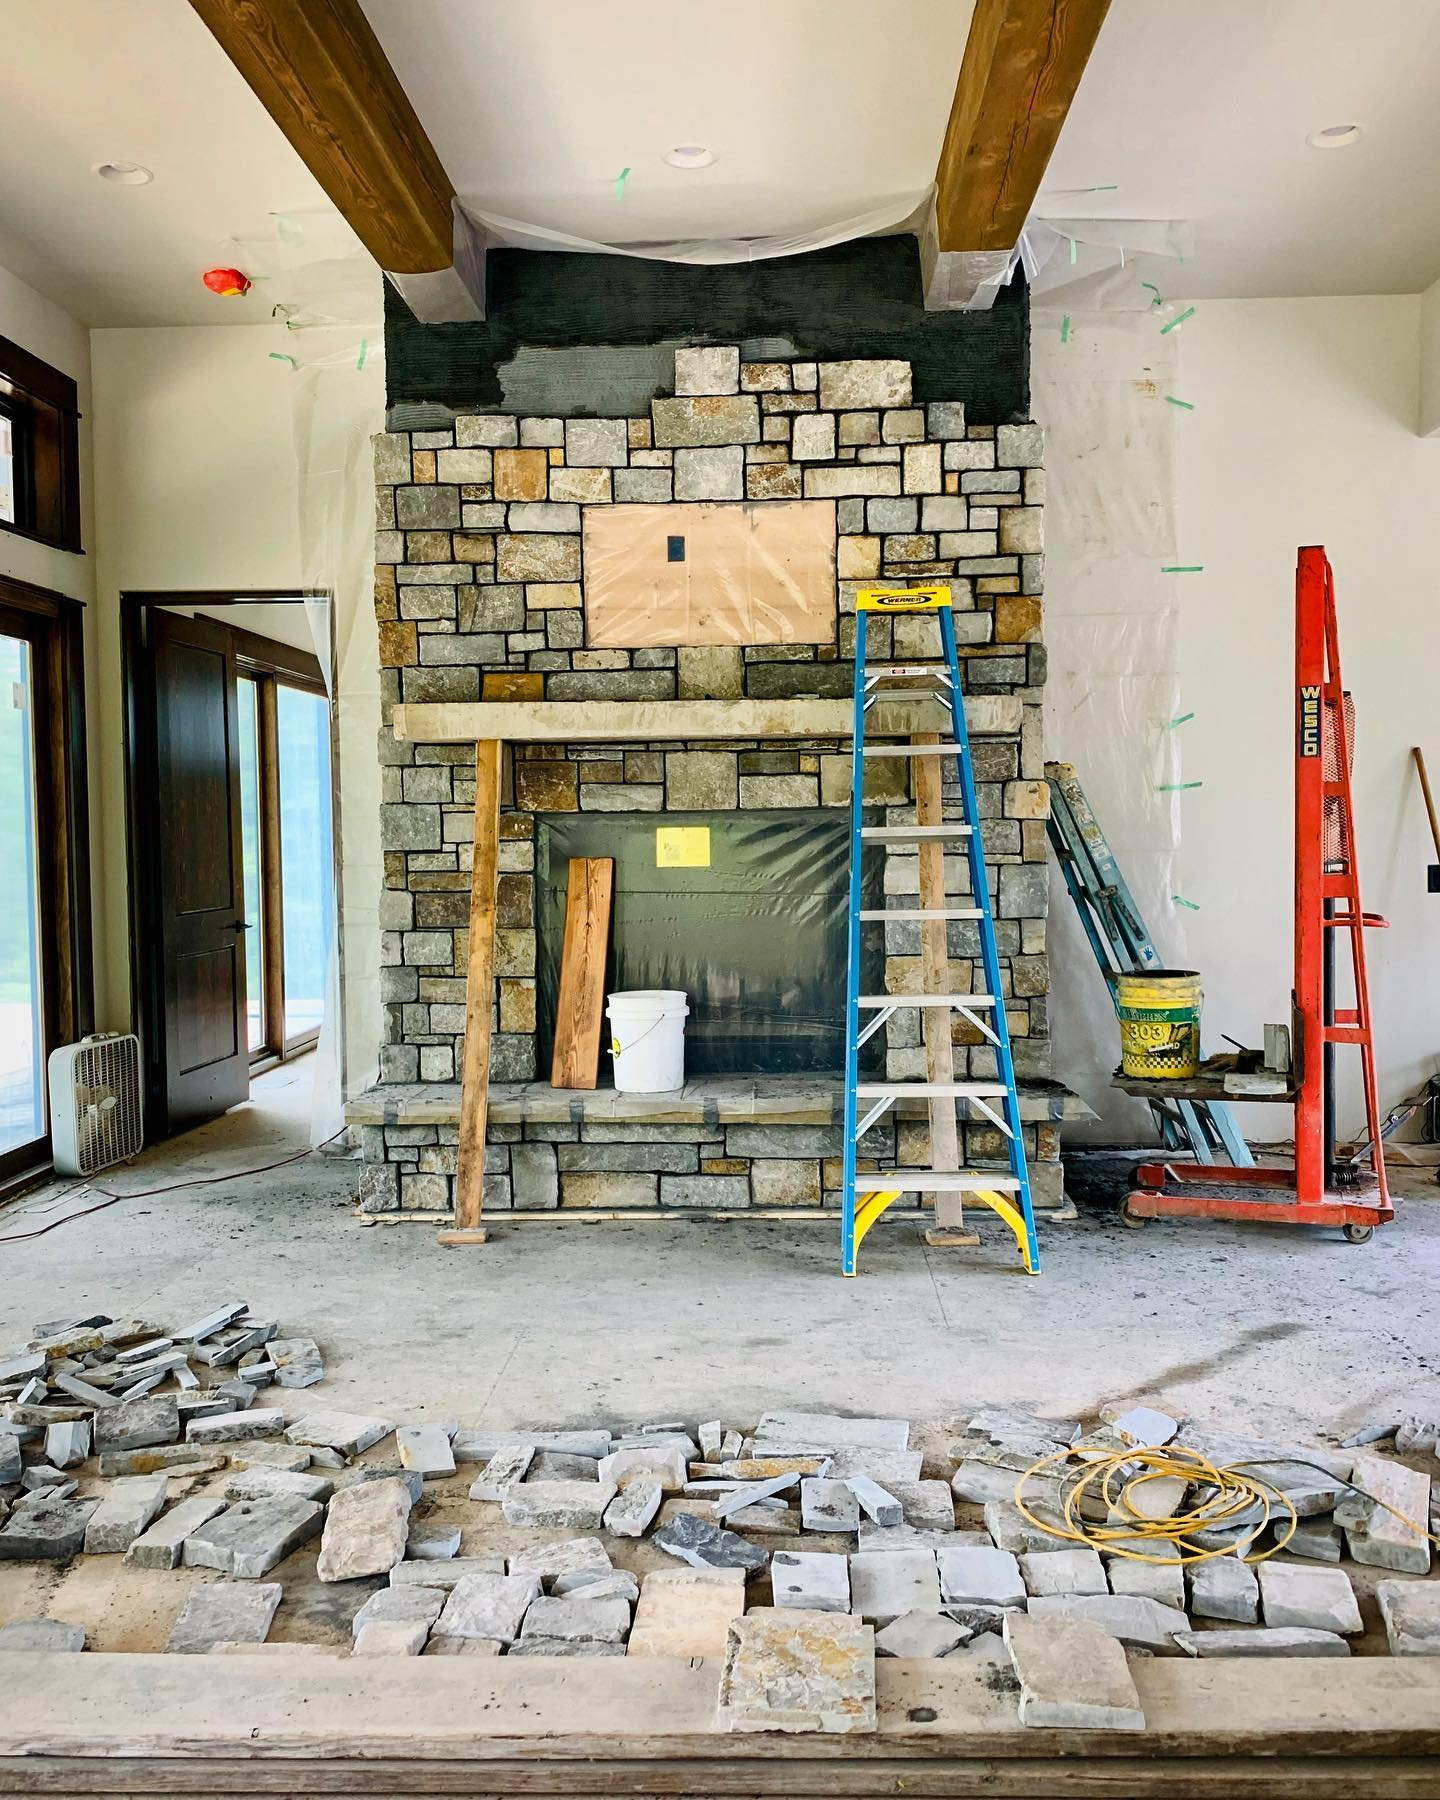 Another Tetris game being played whitefish custom home builder